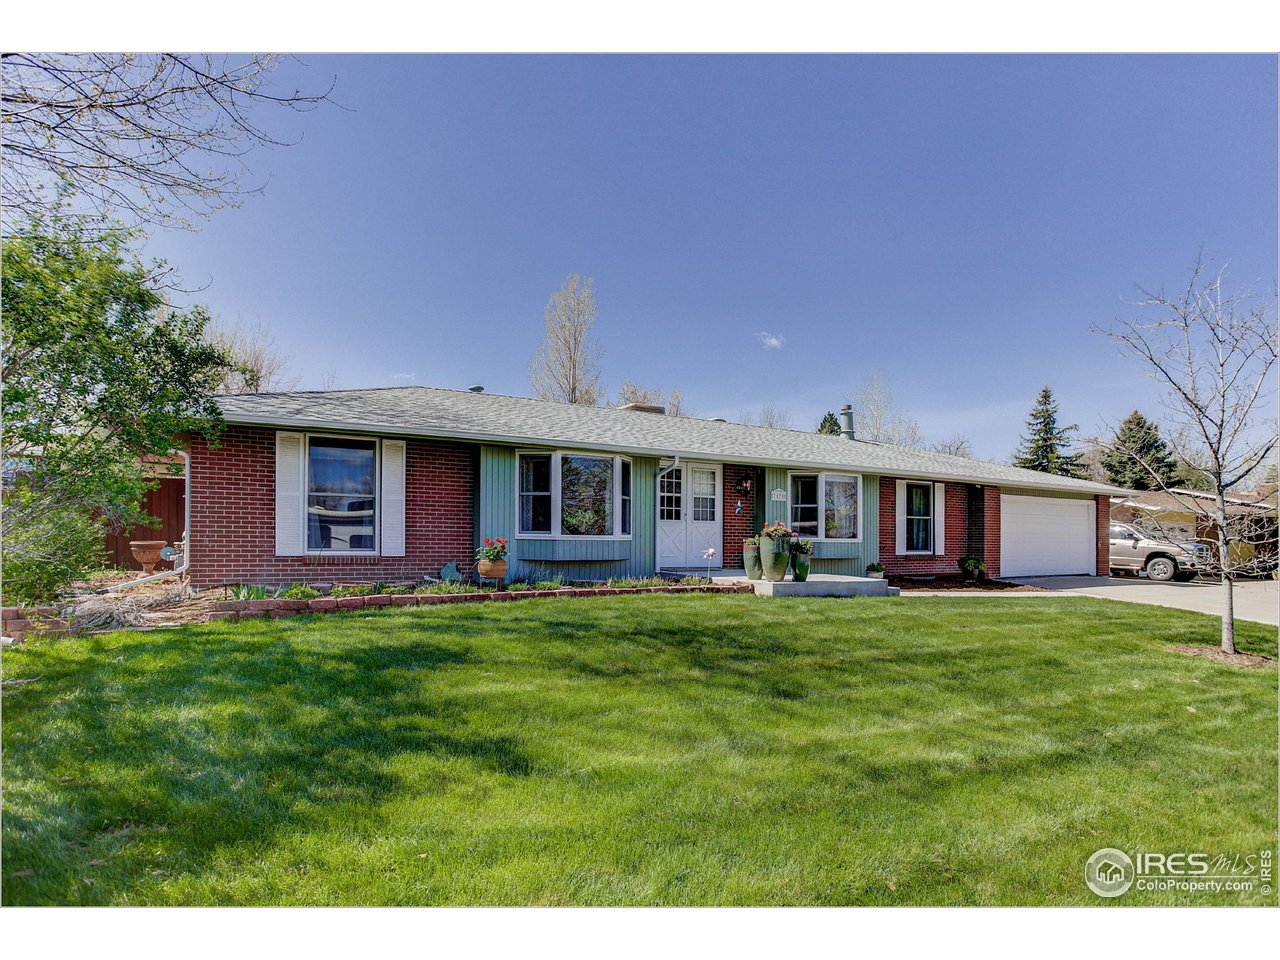 7170 Glacier View Rd, Longmont CO 80503